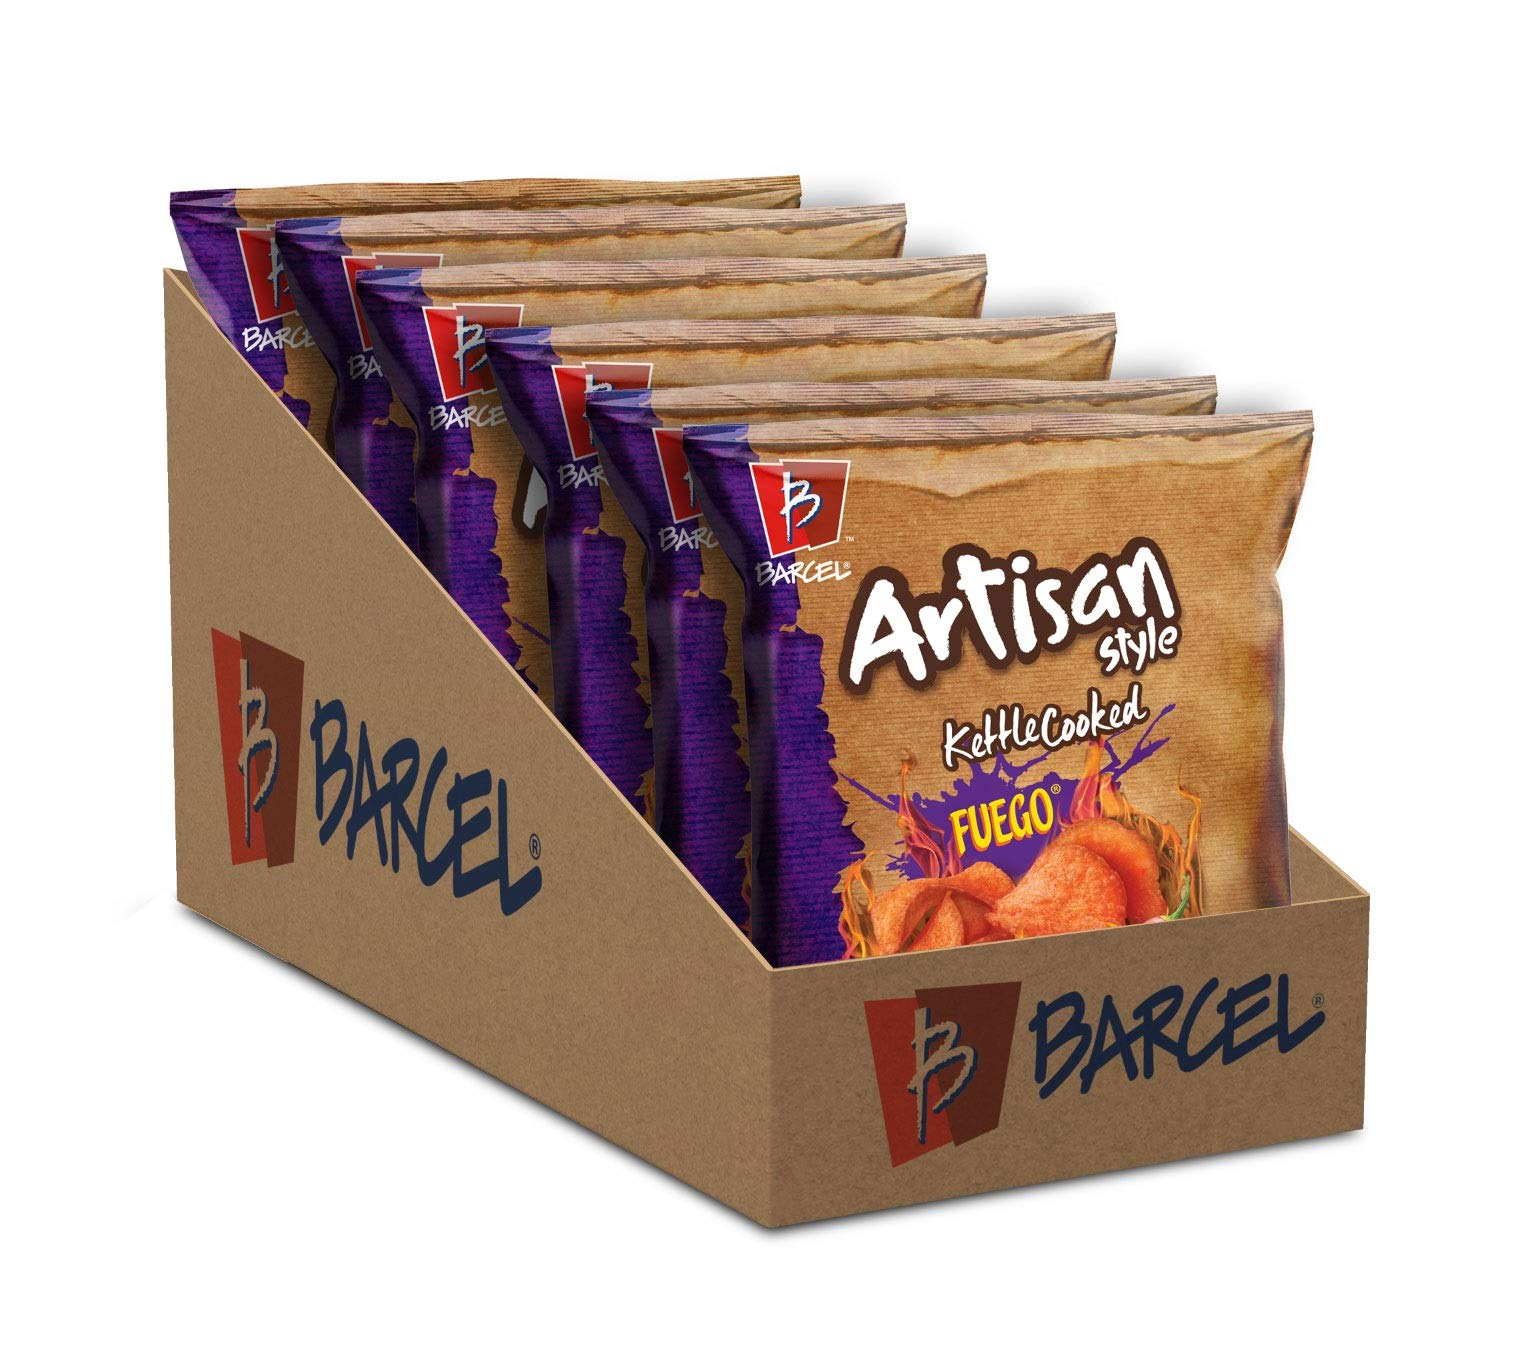 Barcel Artisan Style Kettle Cooked Chips - Crunchy Thin Cut Potato Chips – Fuego Flavor (Hot Chili Pepper & Lime), Box With 6 Bags (4 Oz Each), Fuego, 6Count